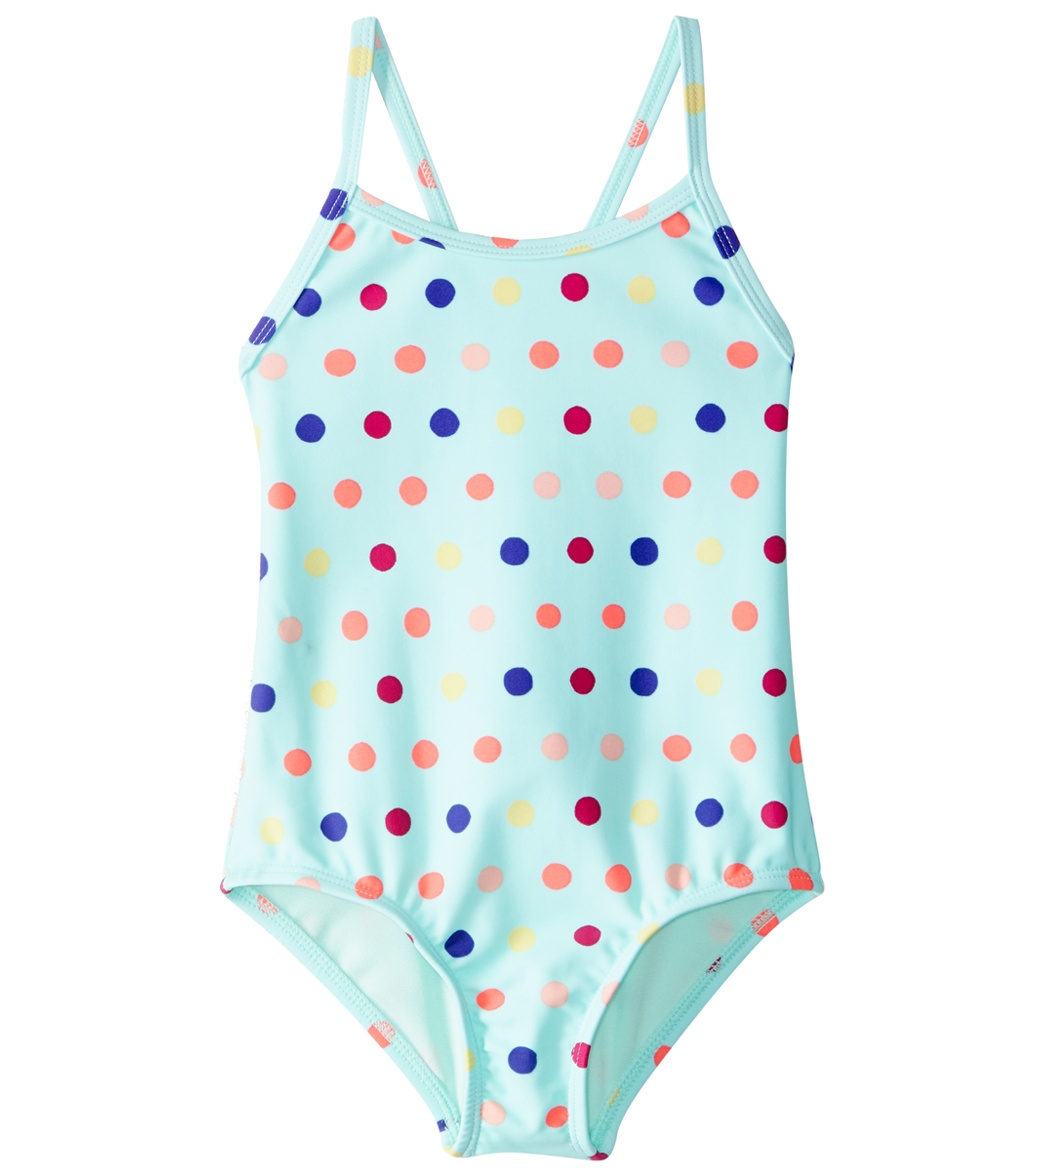 c17ff398ee Roxy Kids Girls' Rainbow Dots One Piece Swimsuit (2T-6) at ...